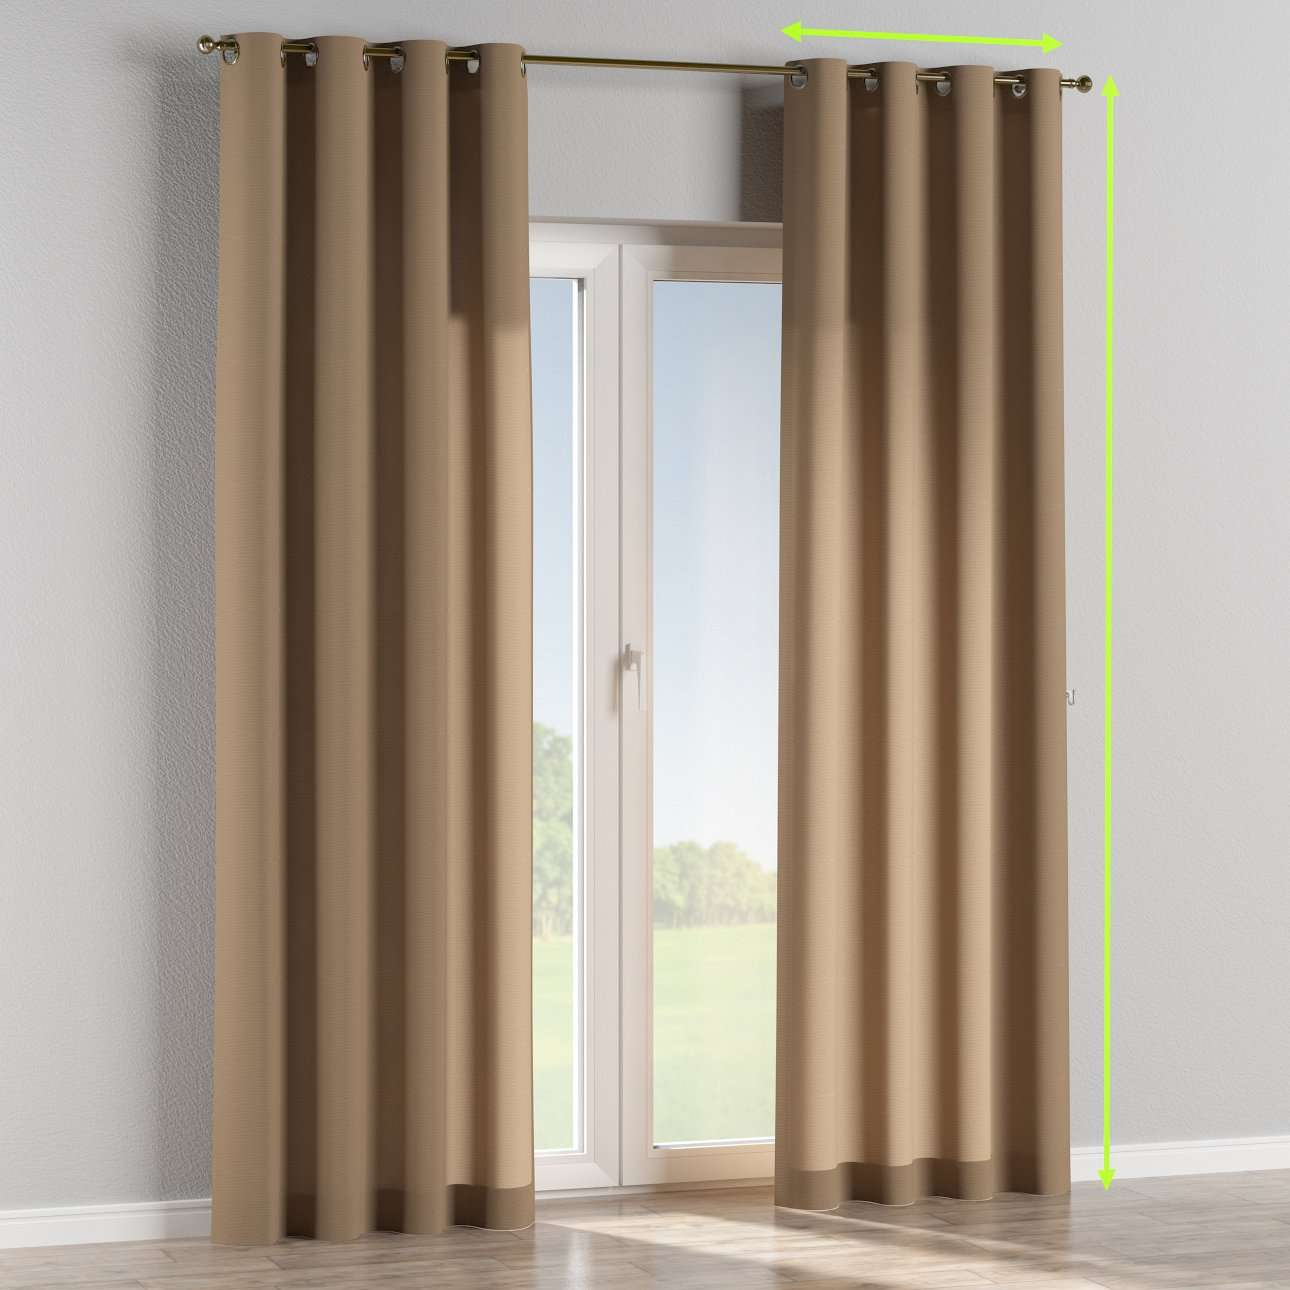 Eyelet curtain in collection Quadro, fabric: 136-09